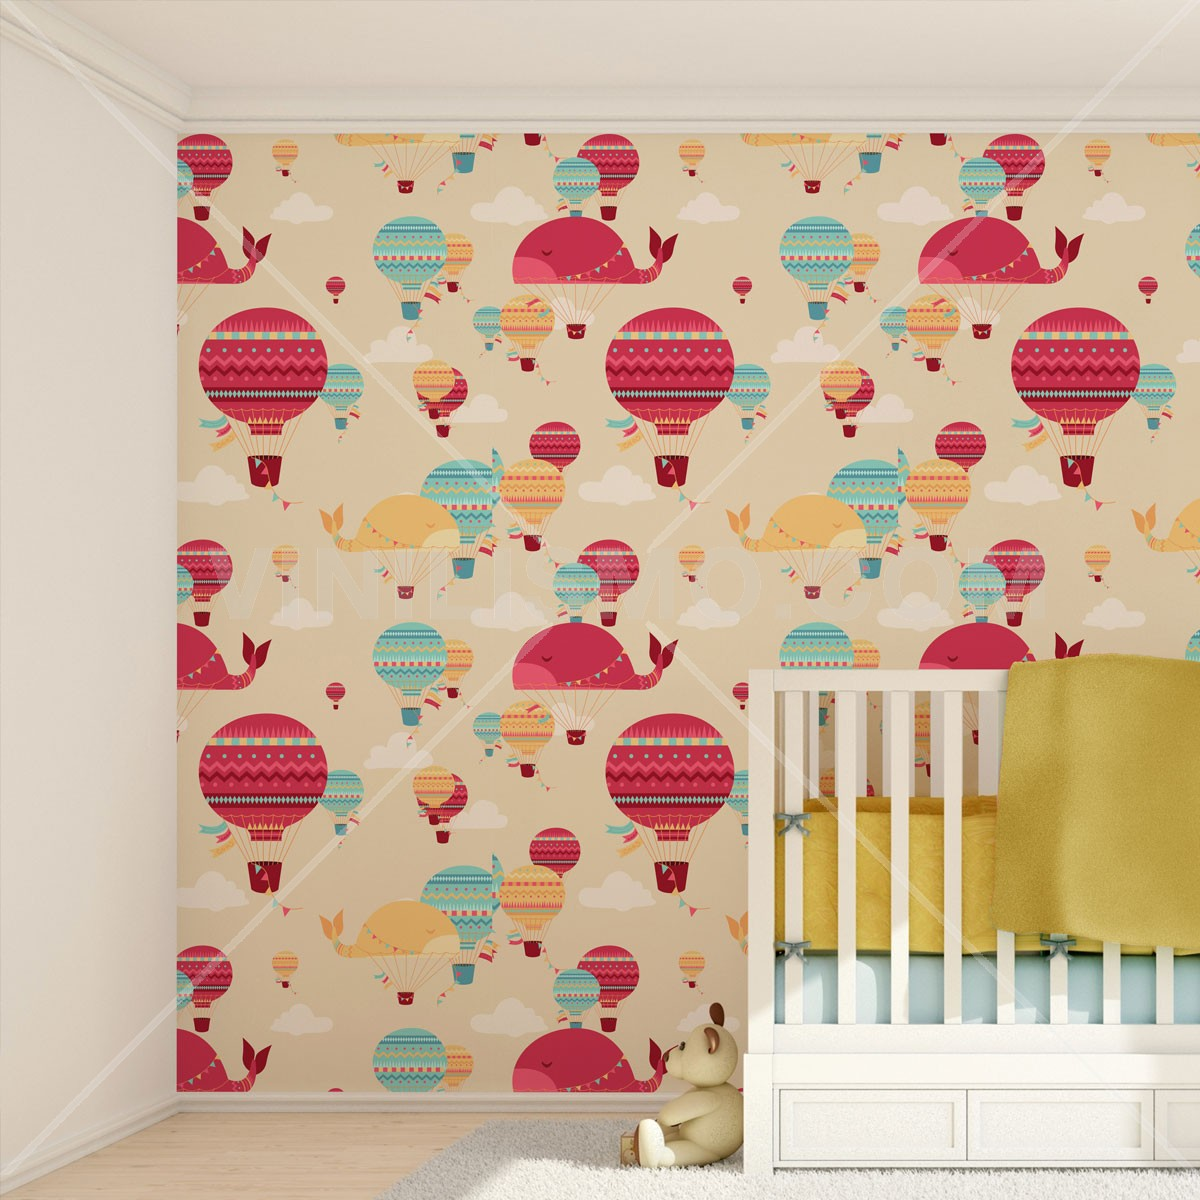 Papel tapiz globos aerost ticos for Papel vinilo pared